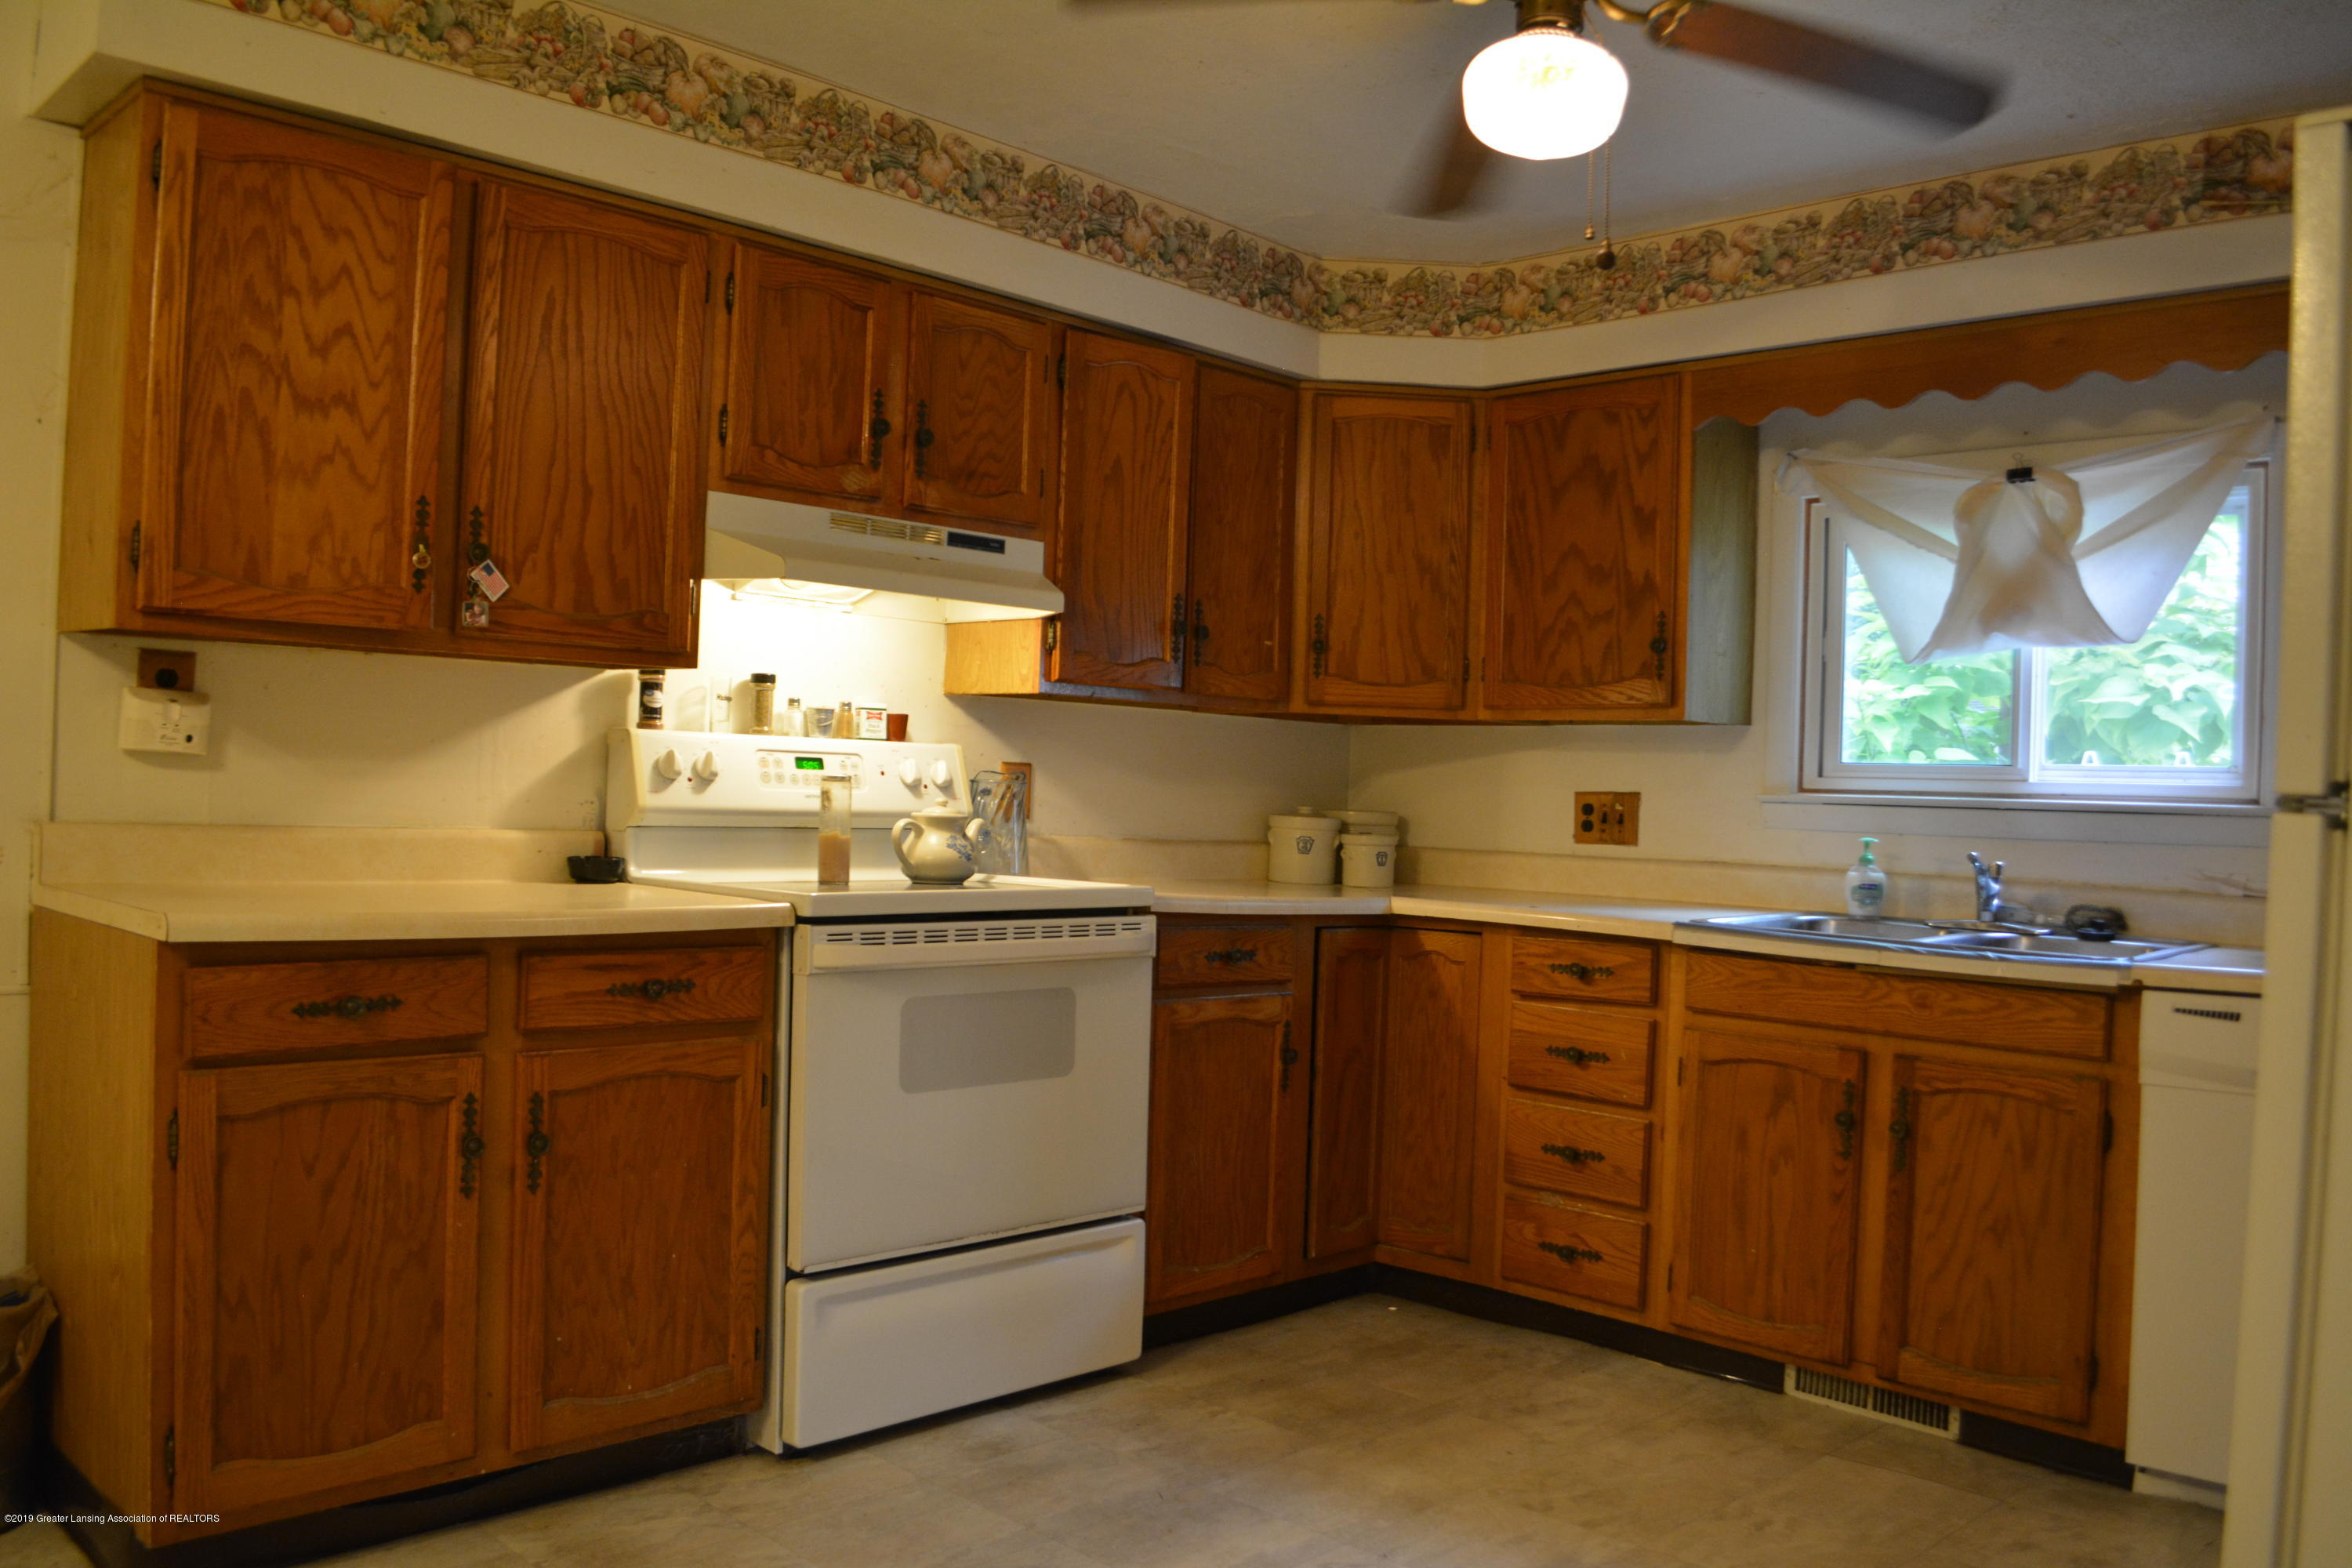 105 W Floral Ave - Kitchen - 2